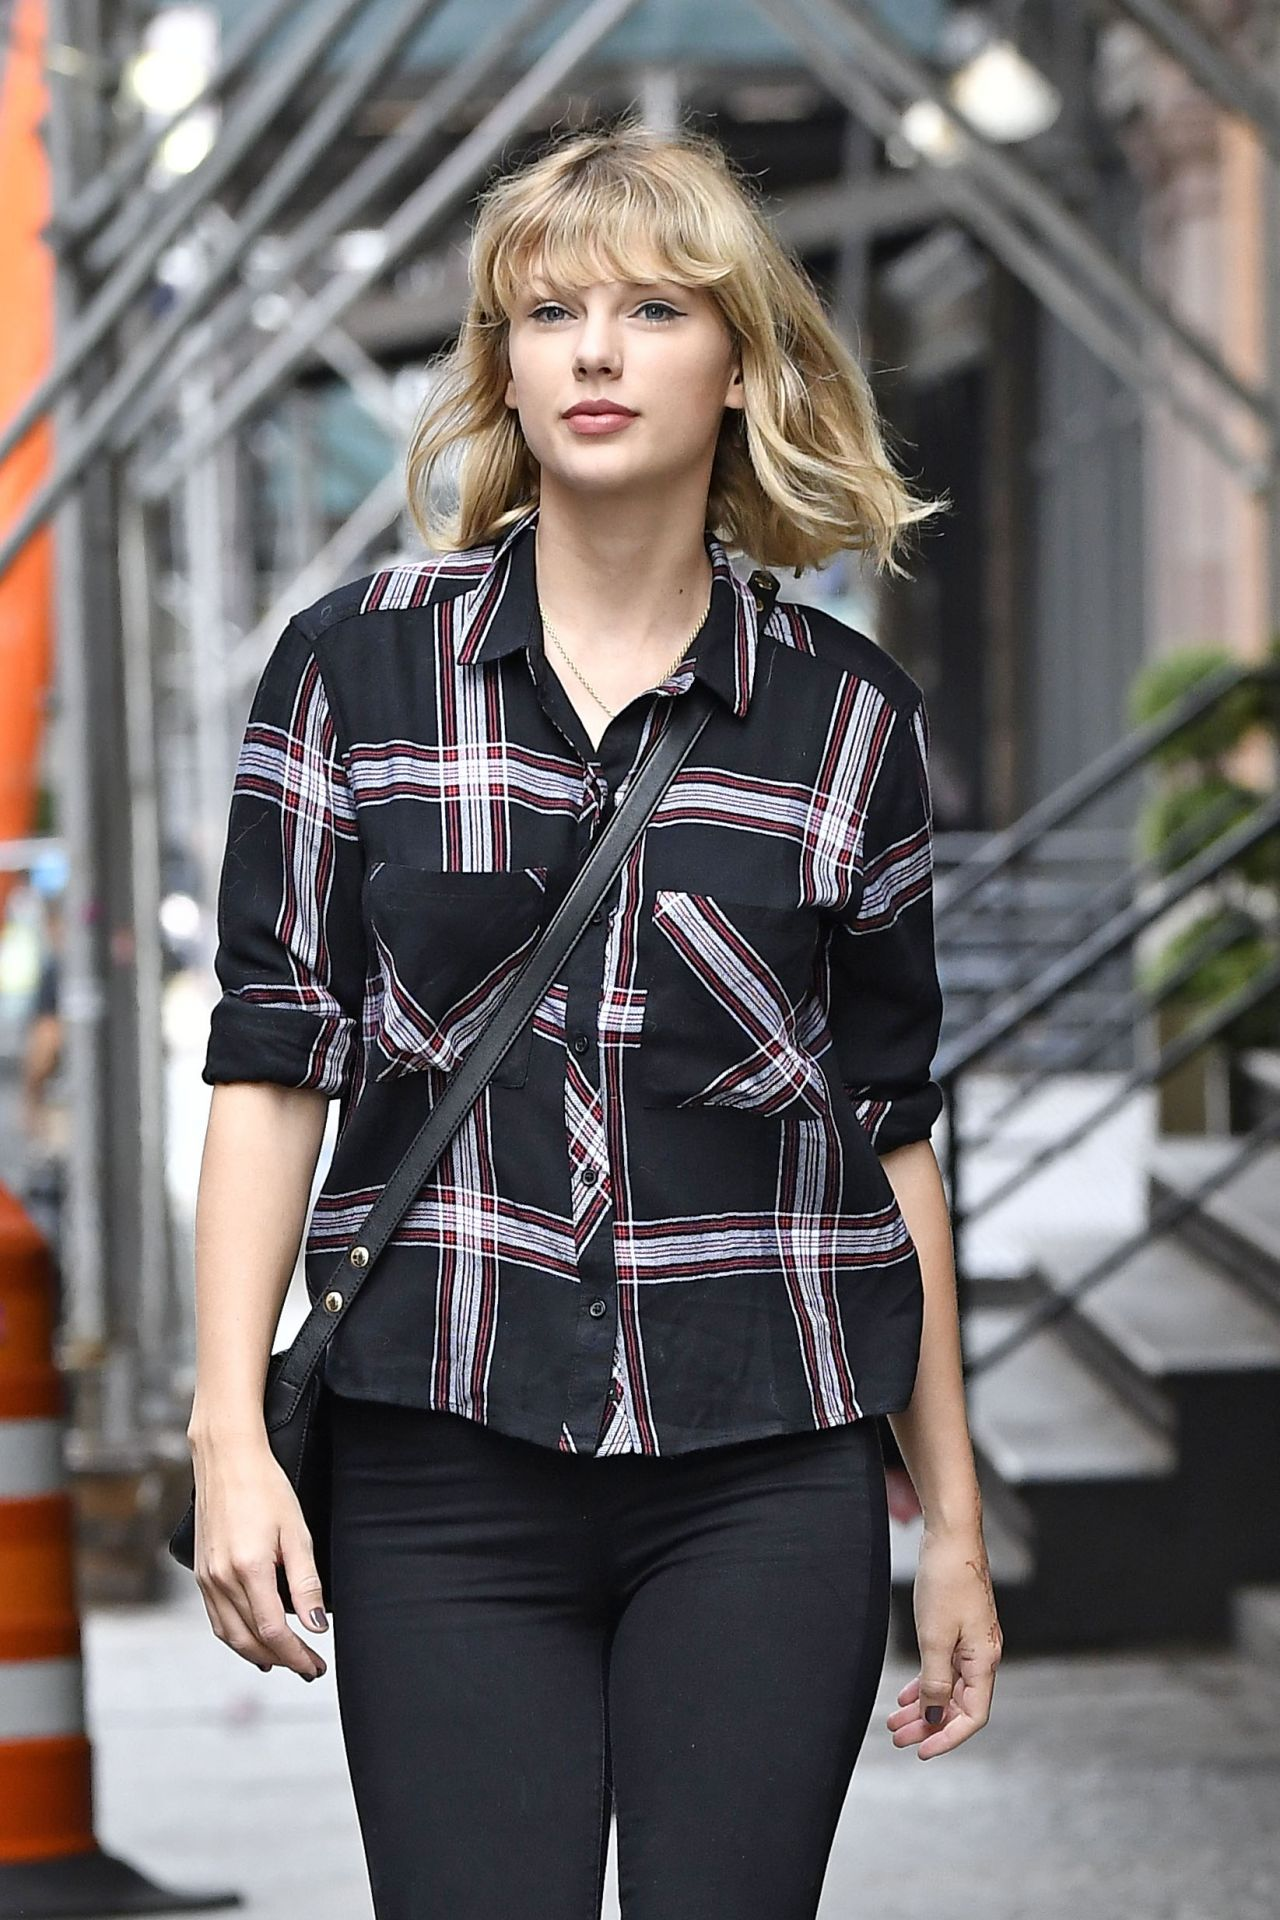 Taylor Swift Casual Style - Tribeca, NYC 9/28/ 2016 Taylor Swift